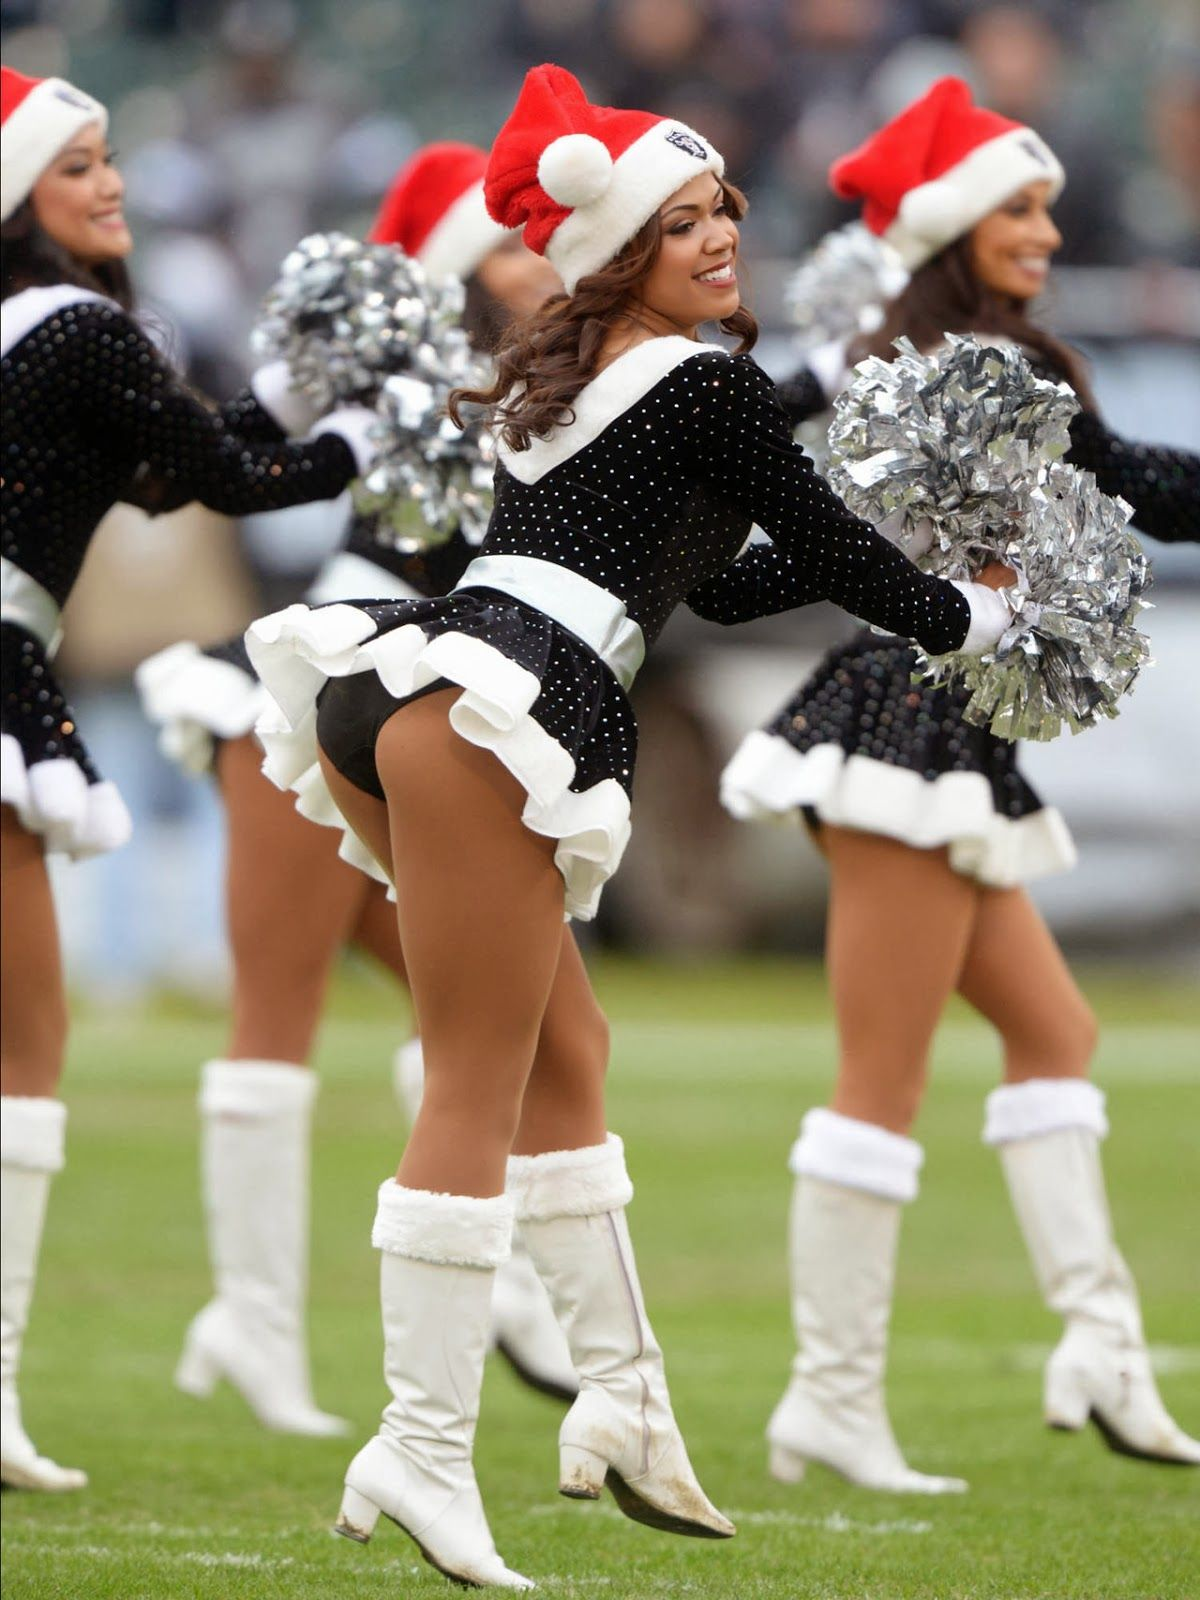 nfl cheerleaders - Saferbrowser Yahoo Image Search Results | NFL ...